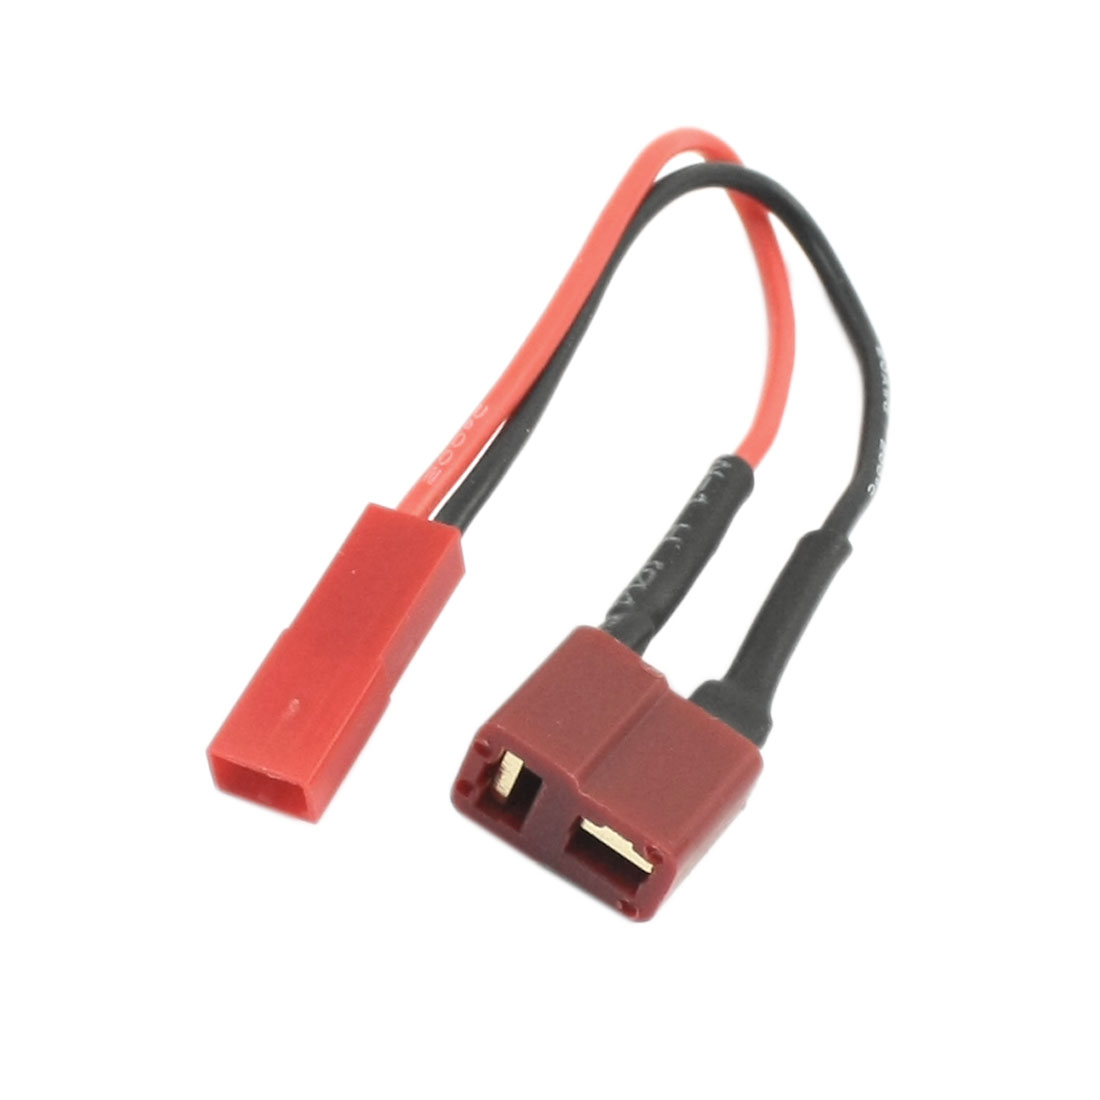 13cm Long 20AWG Black Red JST Female to T-Plug Female Connector Wire Cable for RC Helicopter ESC Lipo Li-po Battery